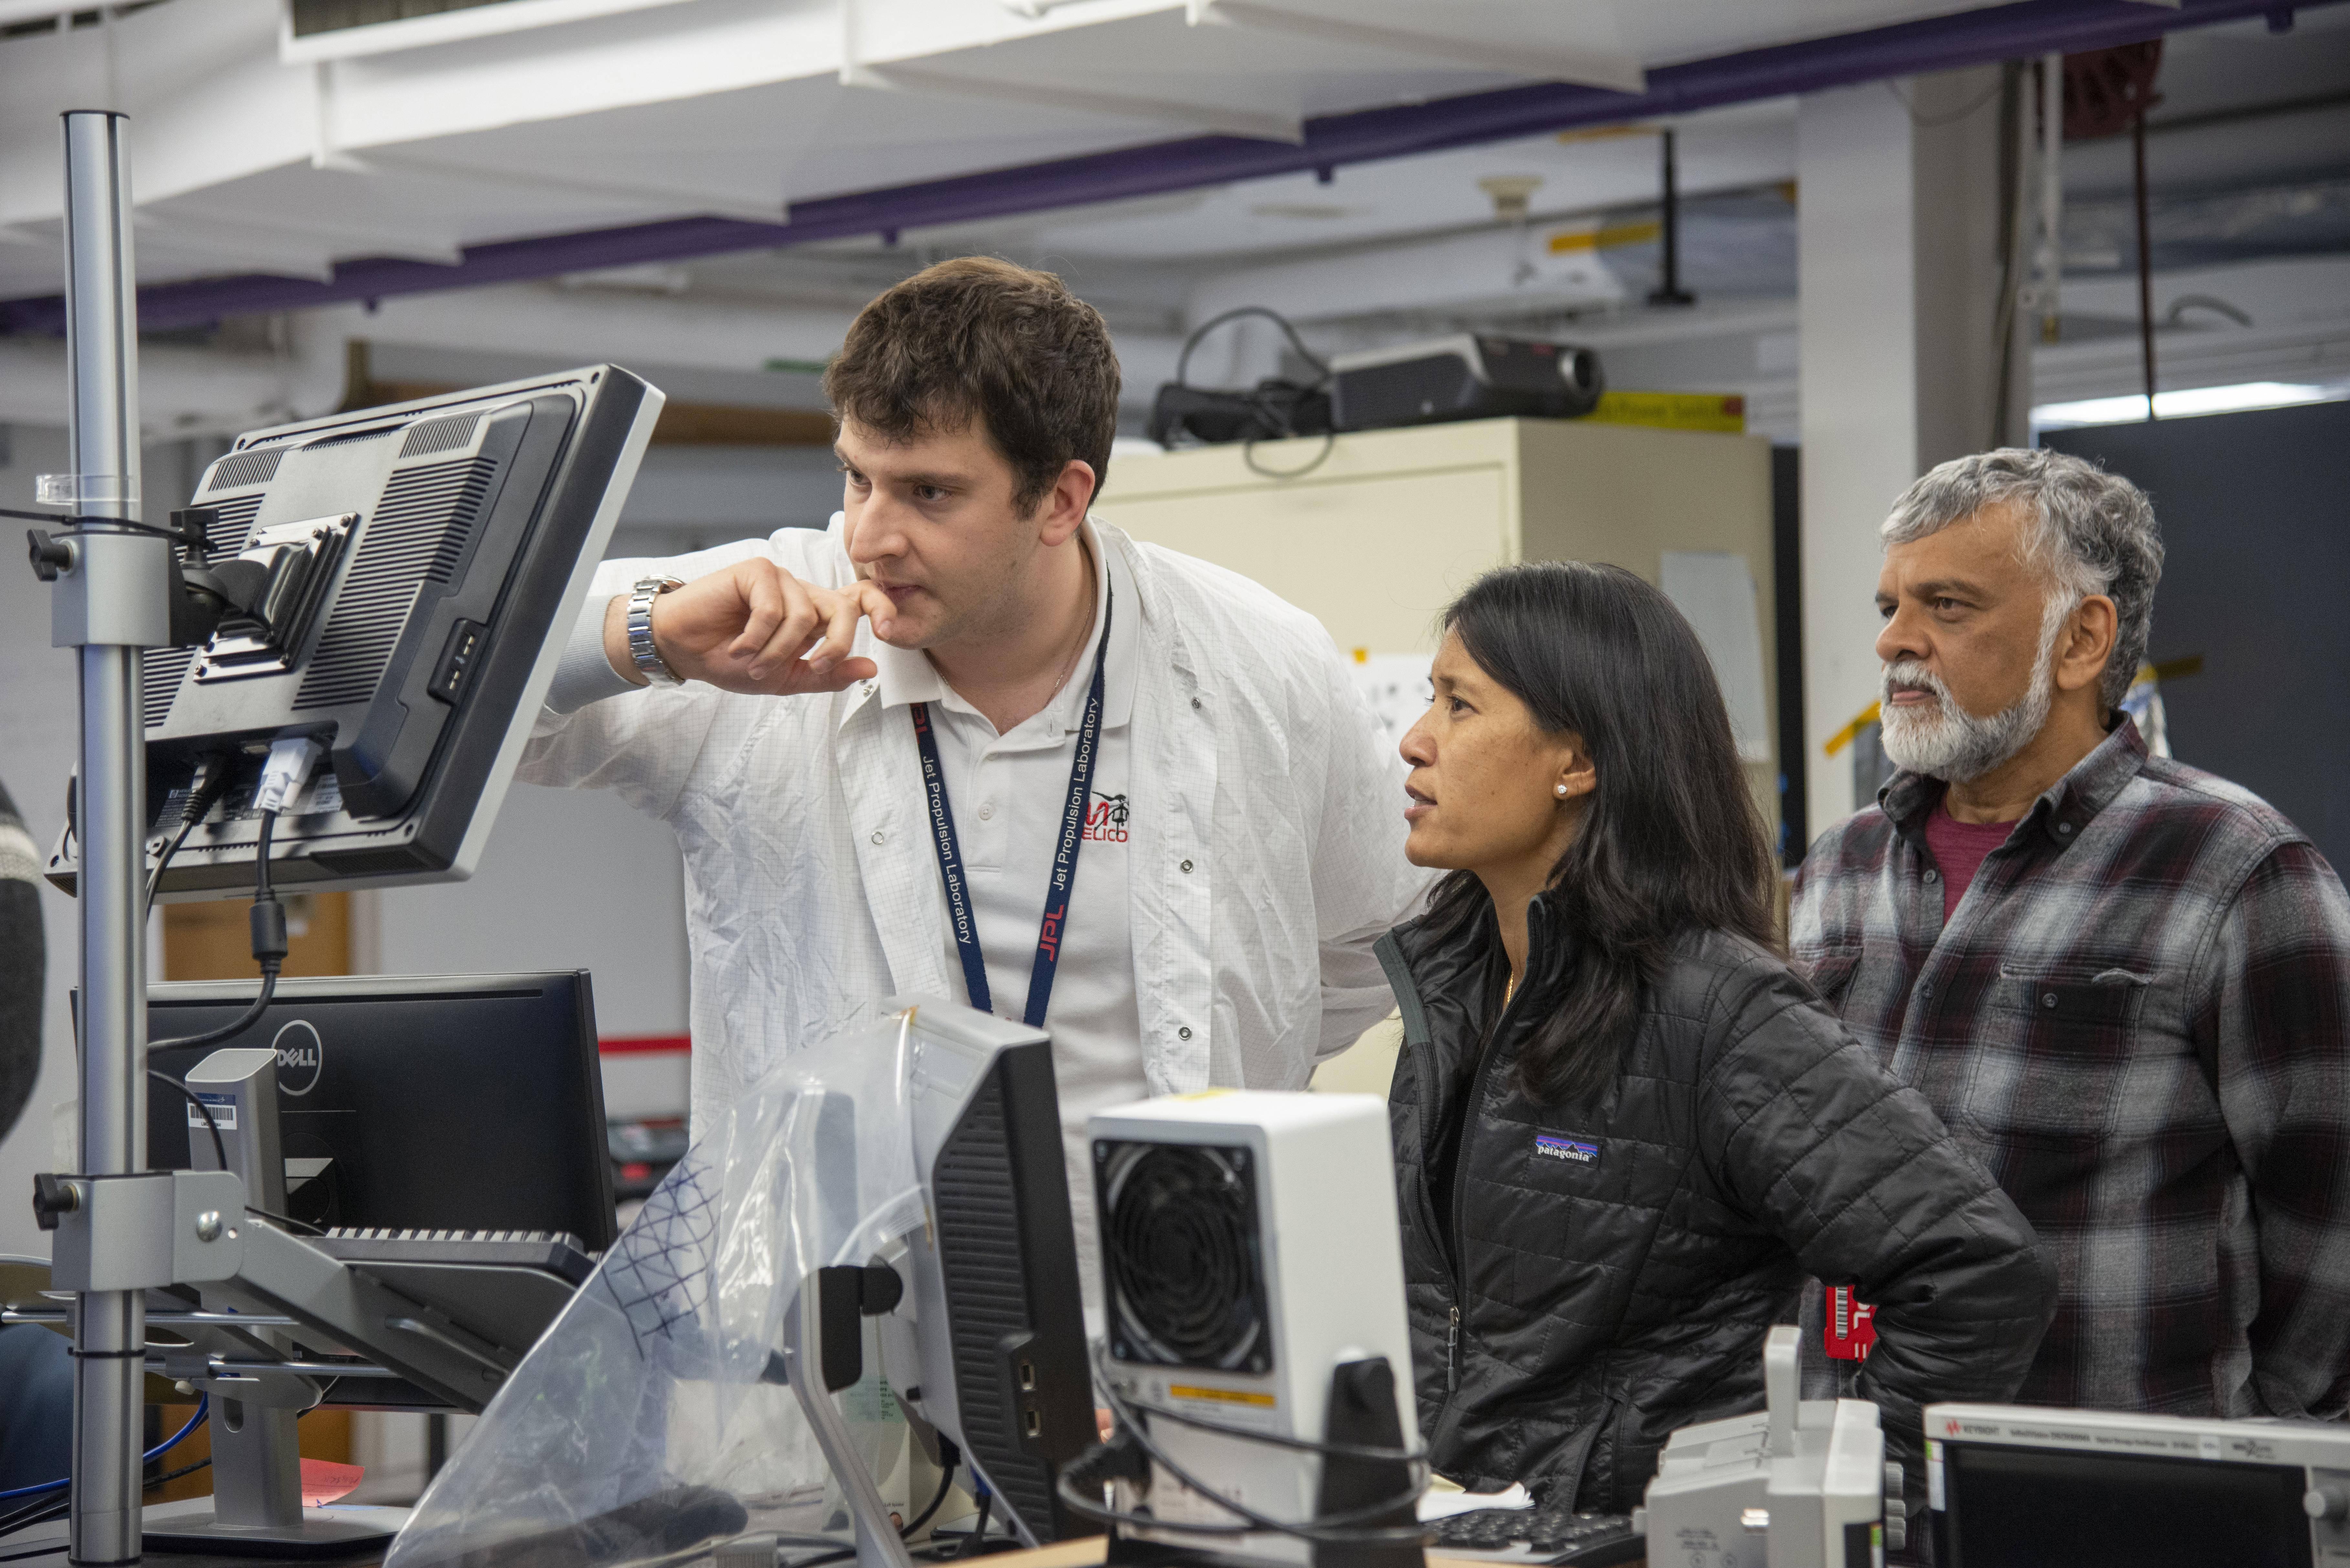 MiMi Aung, project leader of NASA's Mars Ingenuity Helicopter Project, observes a flight test with JPL engineers Teddy Tzanetos (left) and Bob Balaram.   NASA/JPL-Caltech